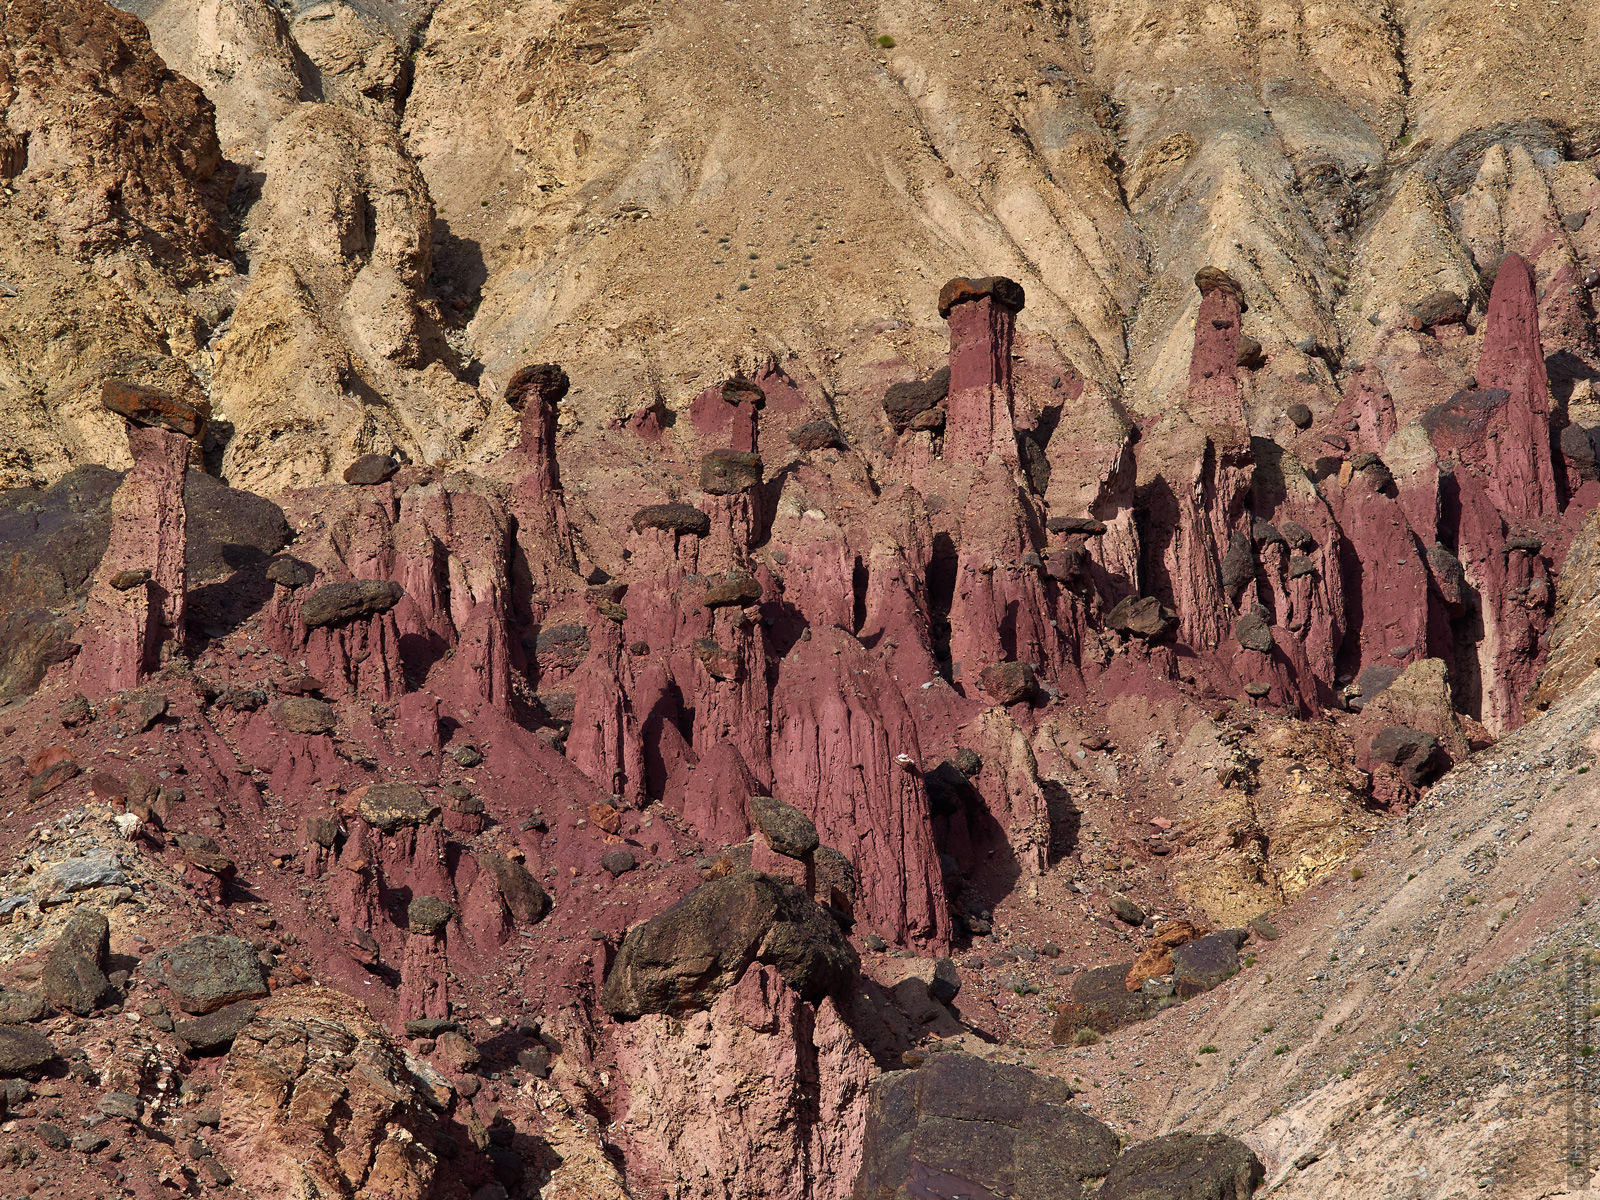 Stone mushrooms of Burgundy Gorge. Tour Legends of Tibet: Ladakh, Lamayuru, Da Khan and Nubra, 19.09. - 28.09.2019.